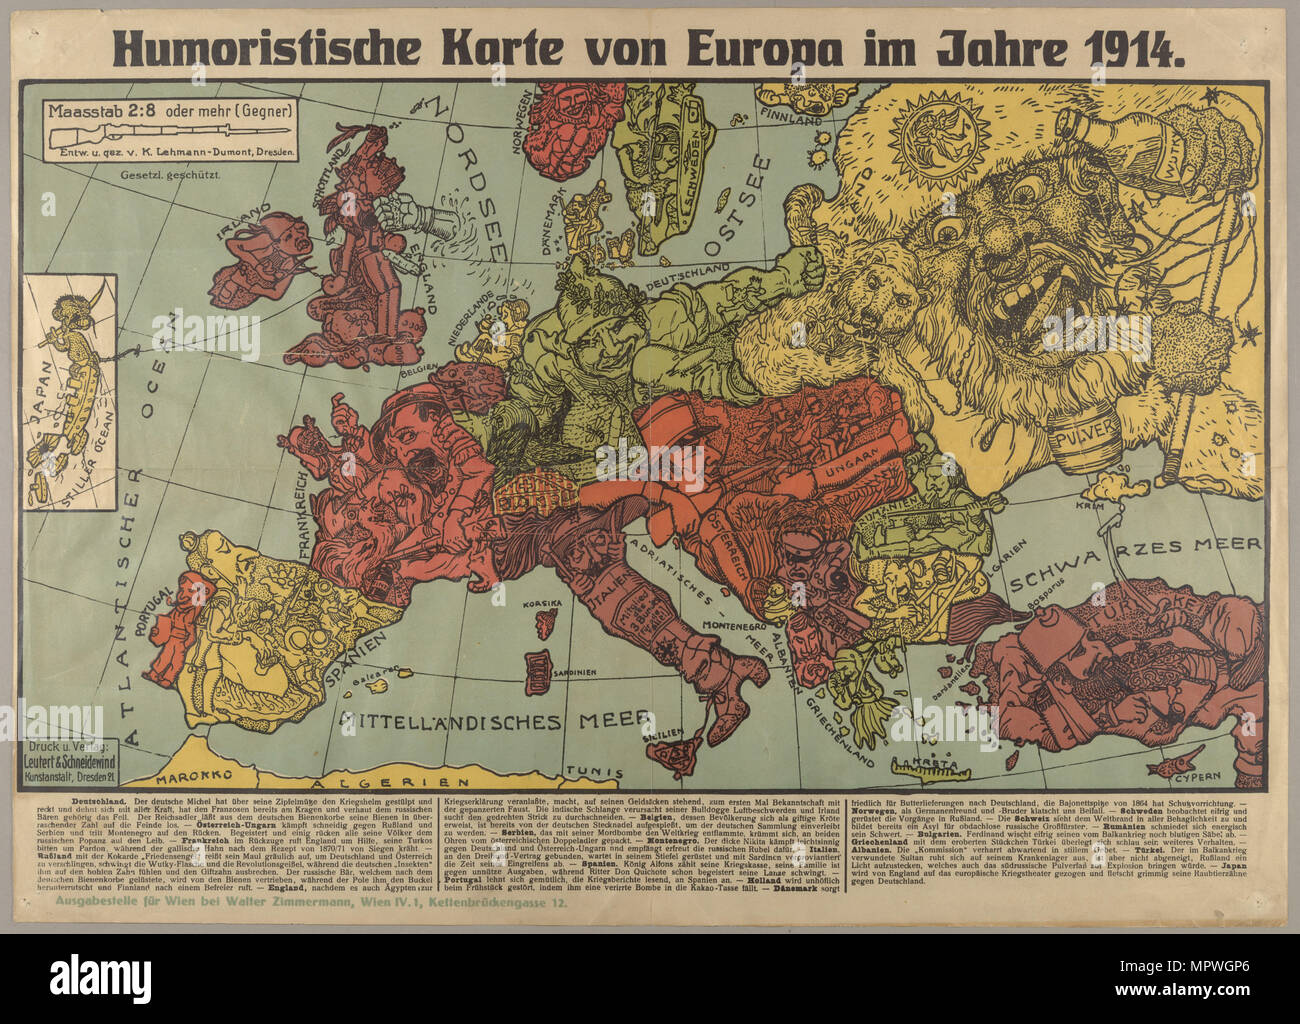 Humorous Europe Map In 1914 1914 Stock Photo 186188078 Alamy